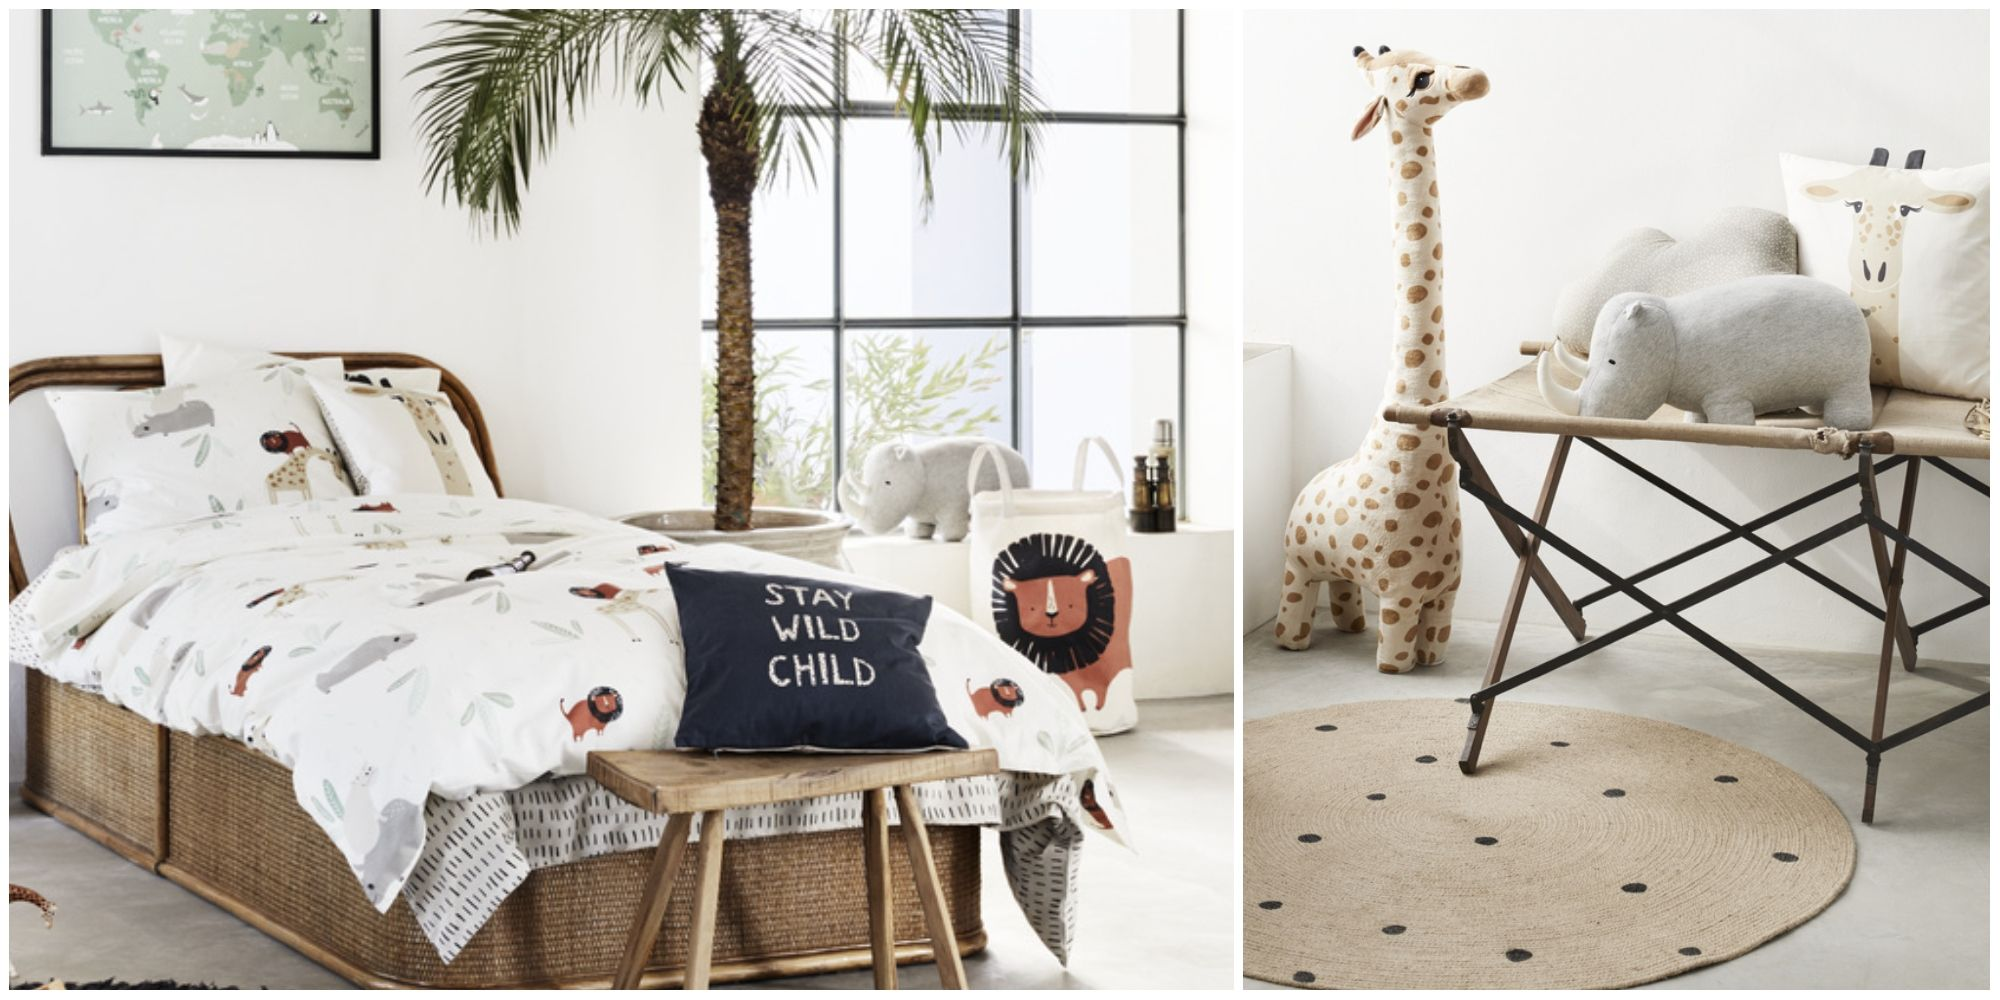 H&M Home Launches Playful Safari Themed Children